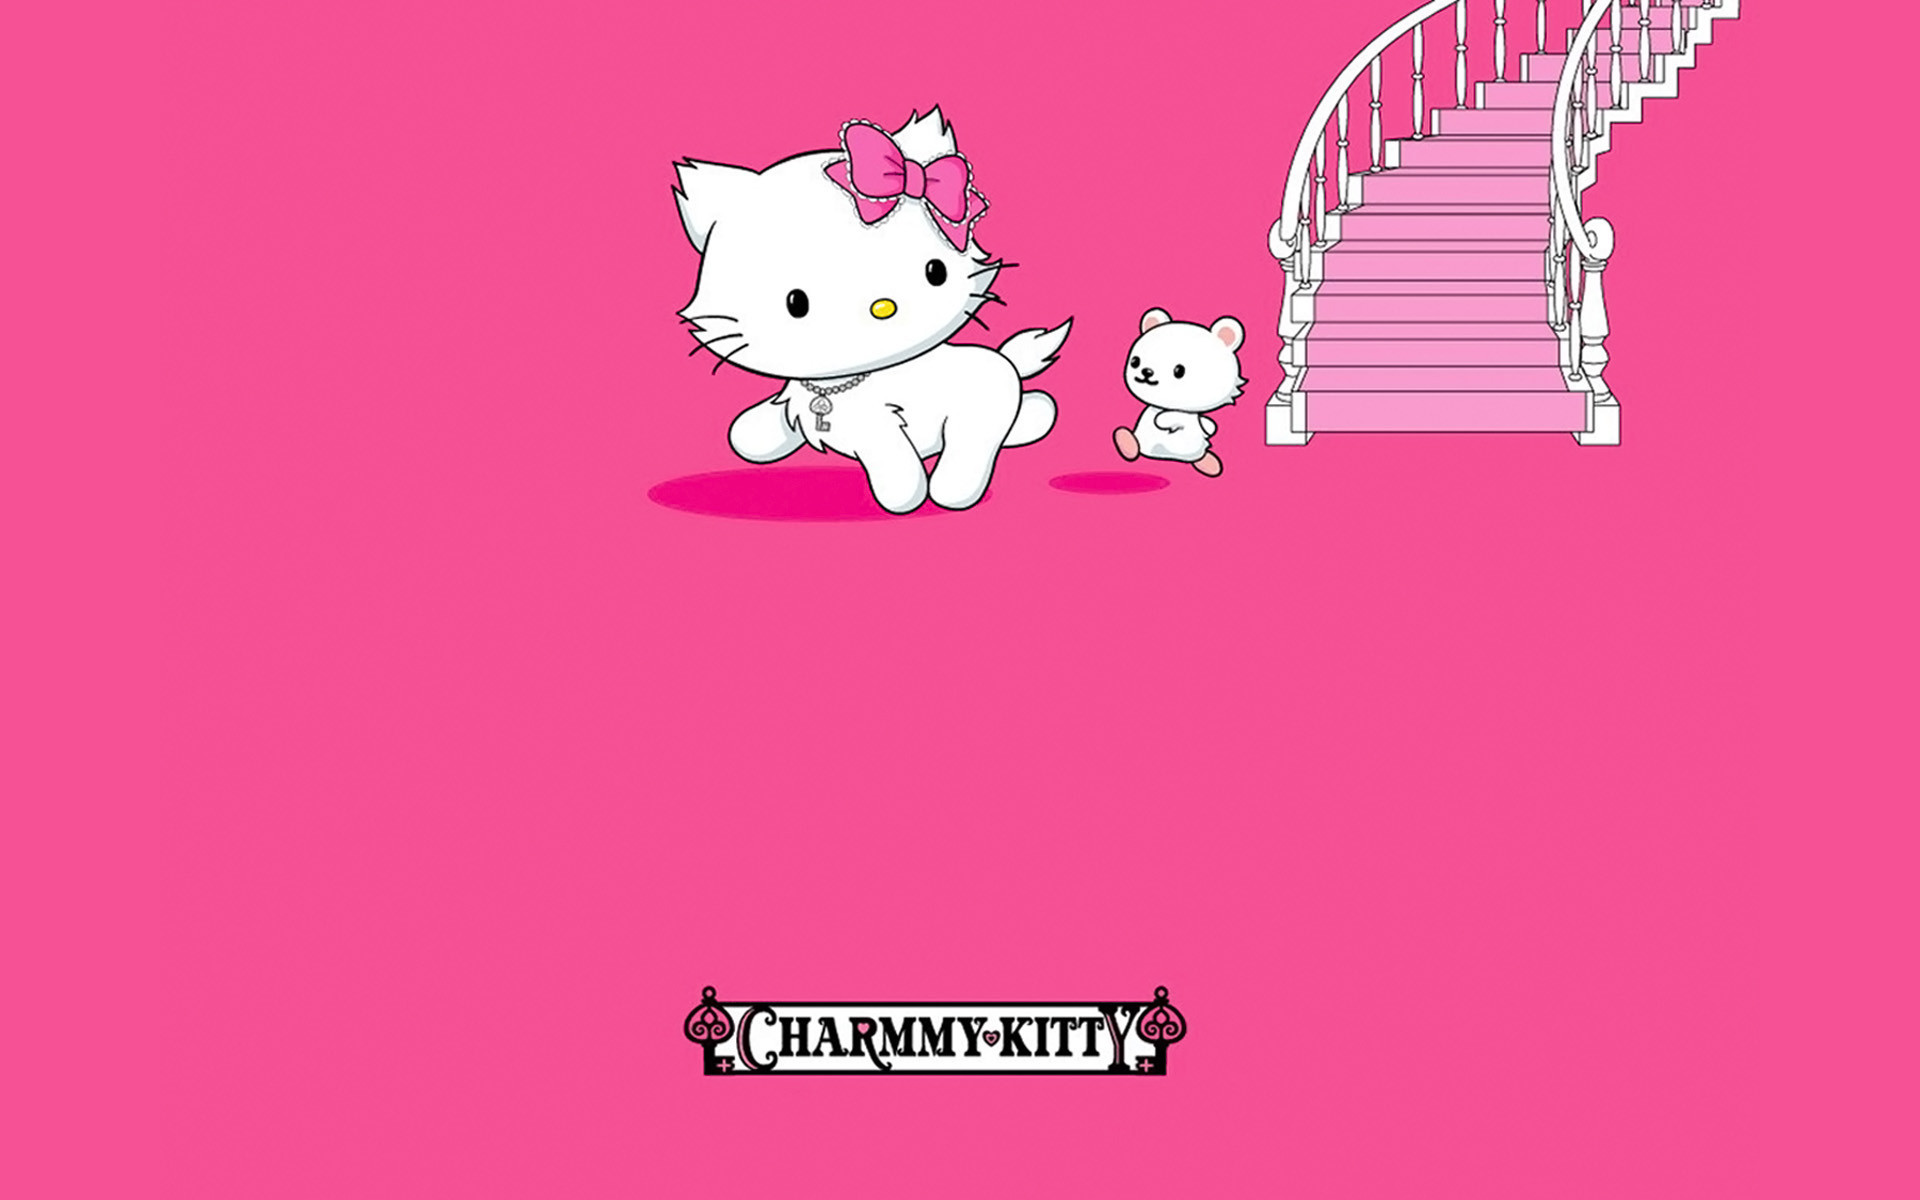 Simple Wallpaper Hello Kitty Desktop Background - 579699-large-hd-hello-kitty-wallpapers-1920x1200-windows-10  Collection_292718.jpg